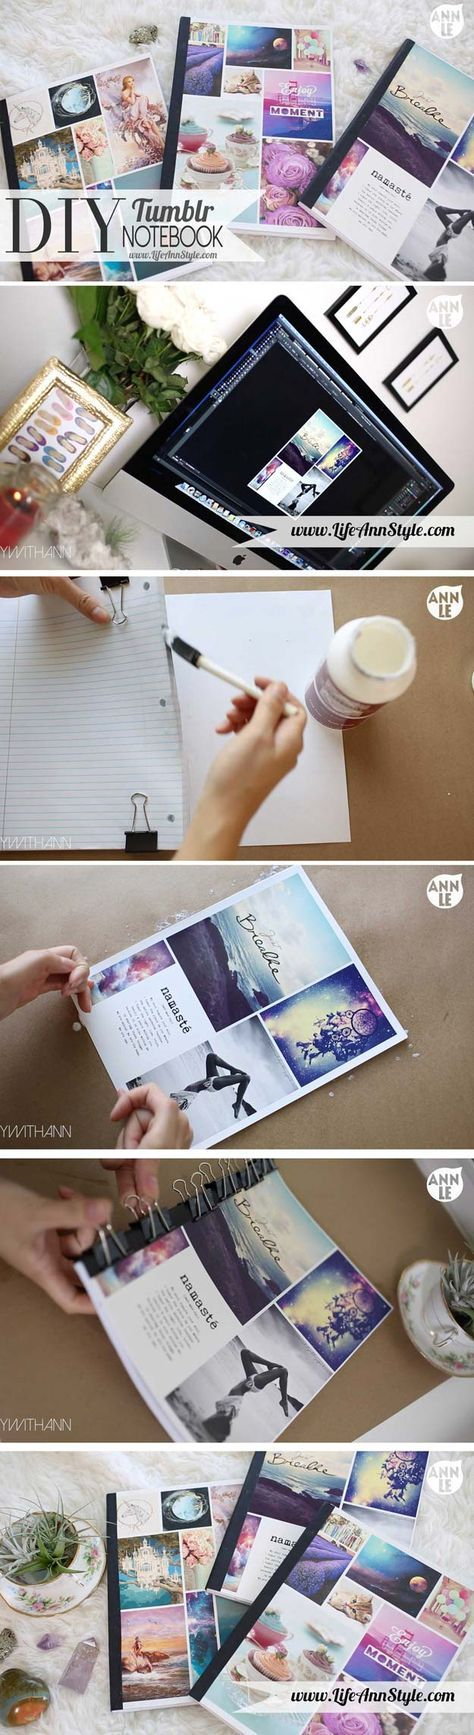 It's time to inspire the singer/ song writer or that book writer in your family with this quick and easy idea..... Lets make it personal. http://diyprojectsforteens.com/diy-projects-tumblr